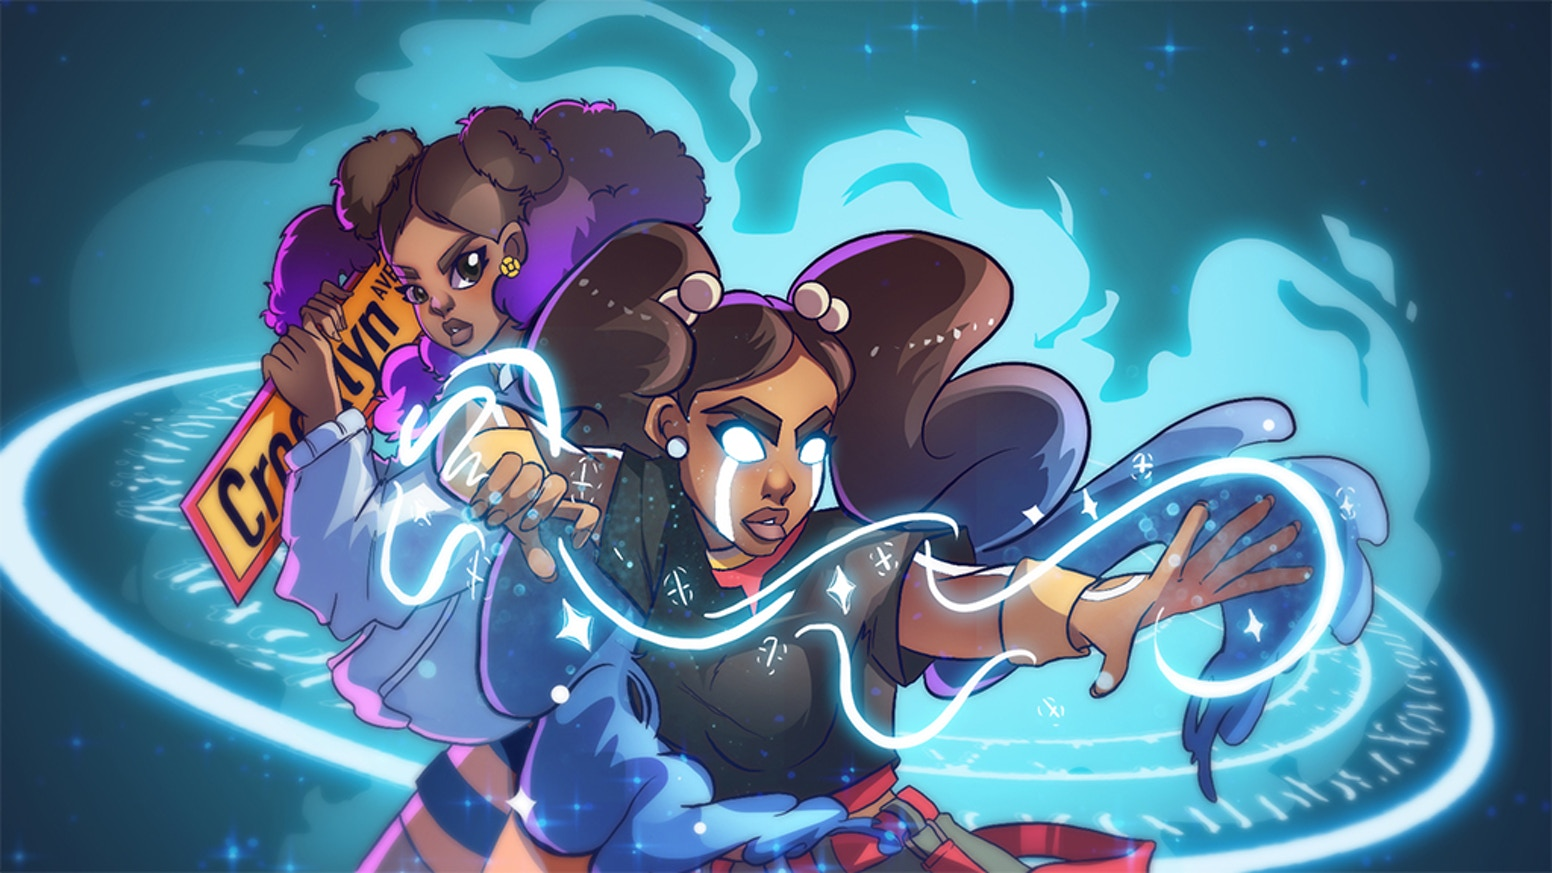 A journey about 5 girls who travel the world to battle giants, scientists & navigate personal differences to save the world!